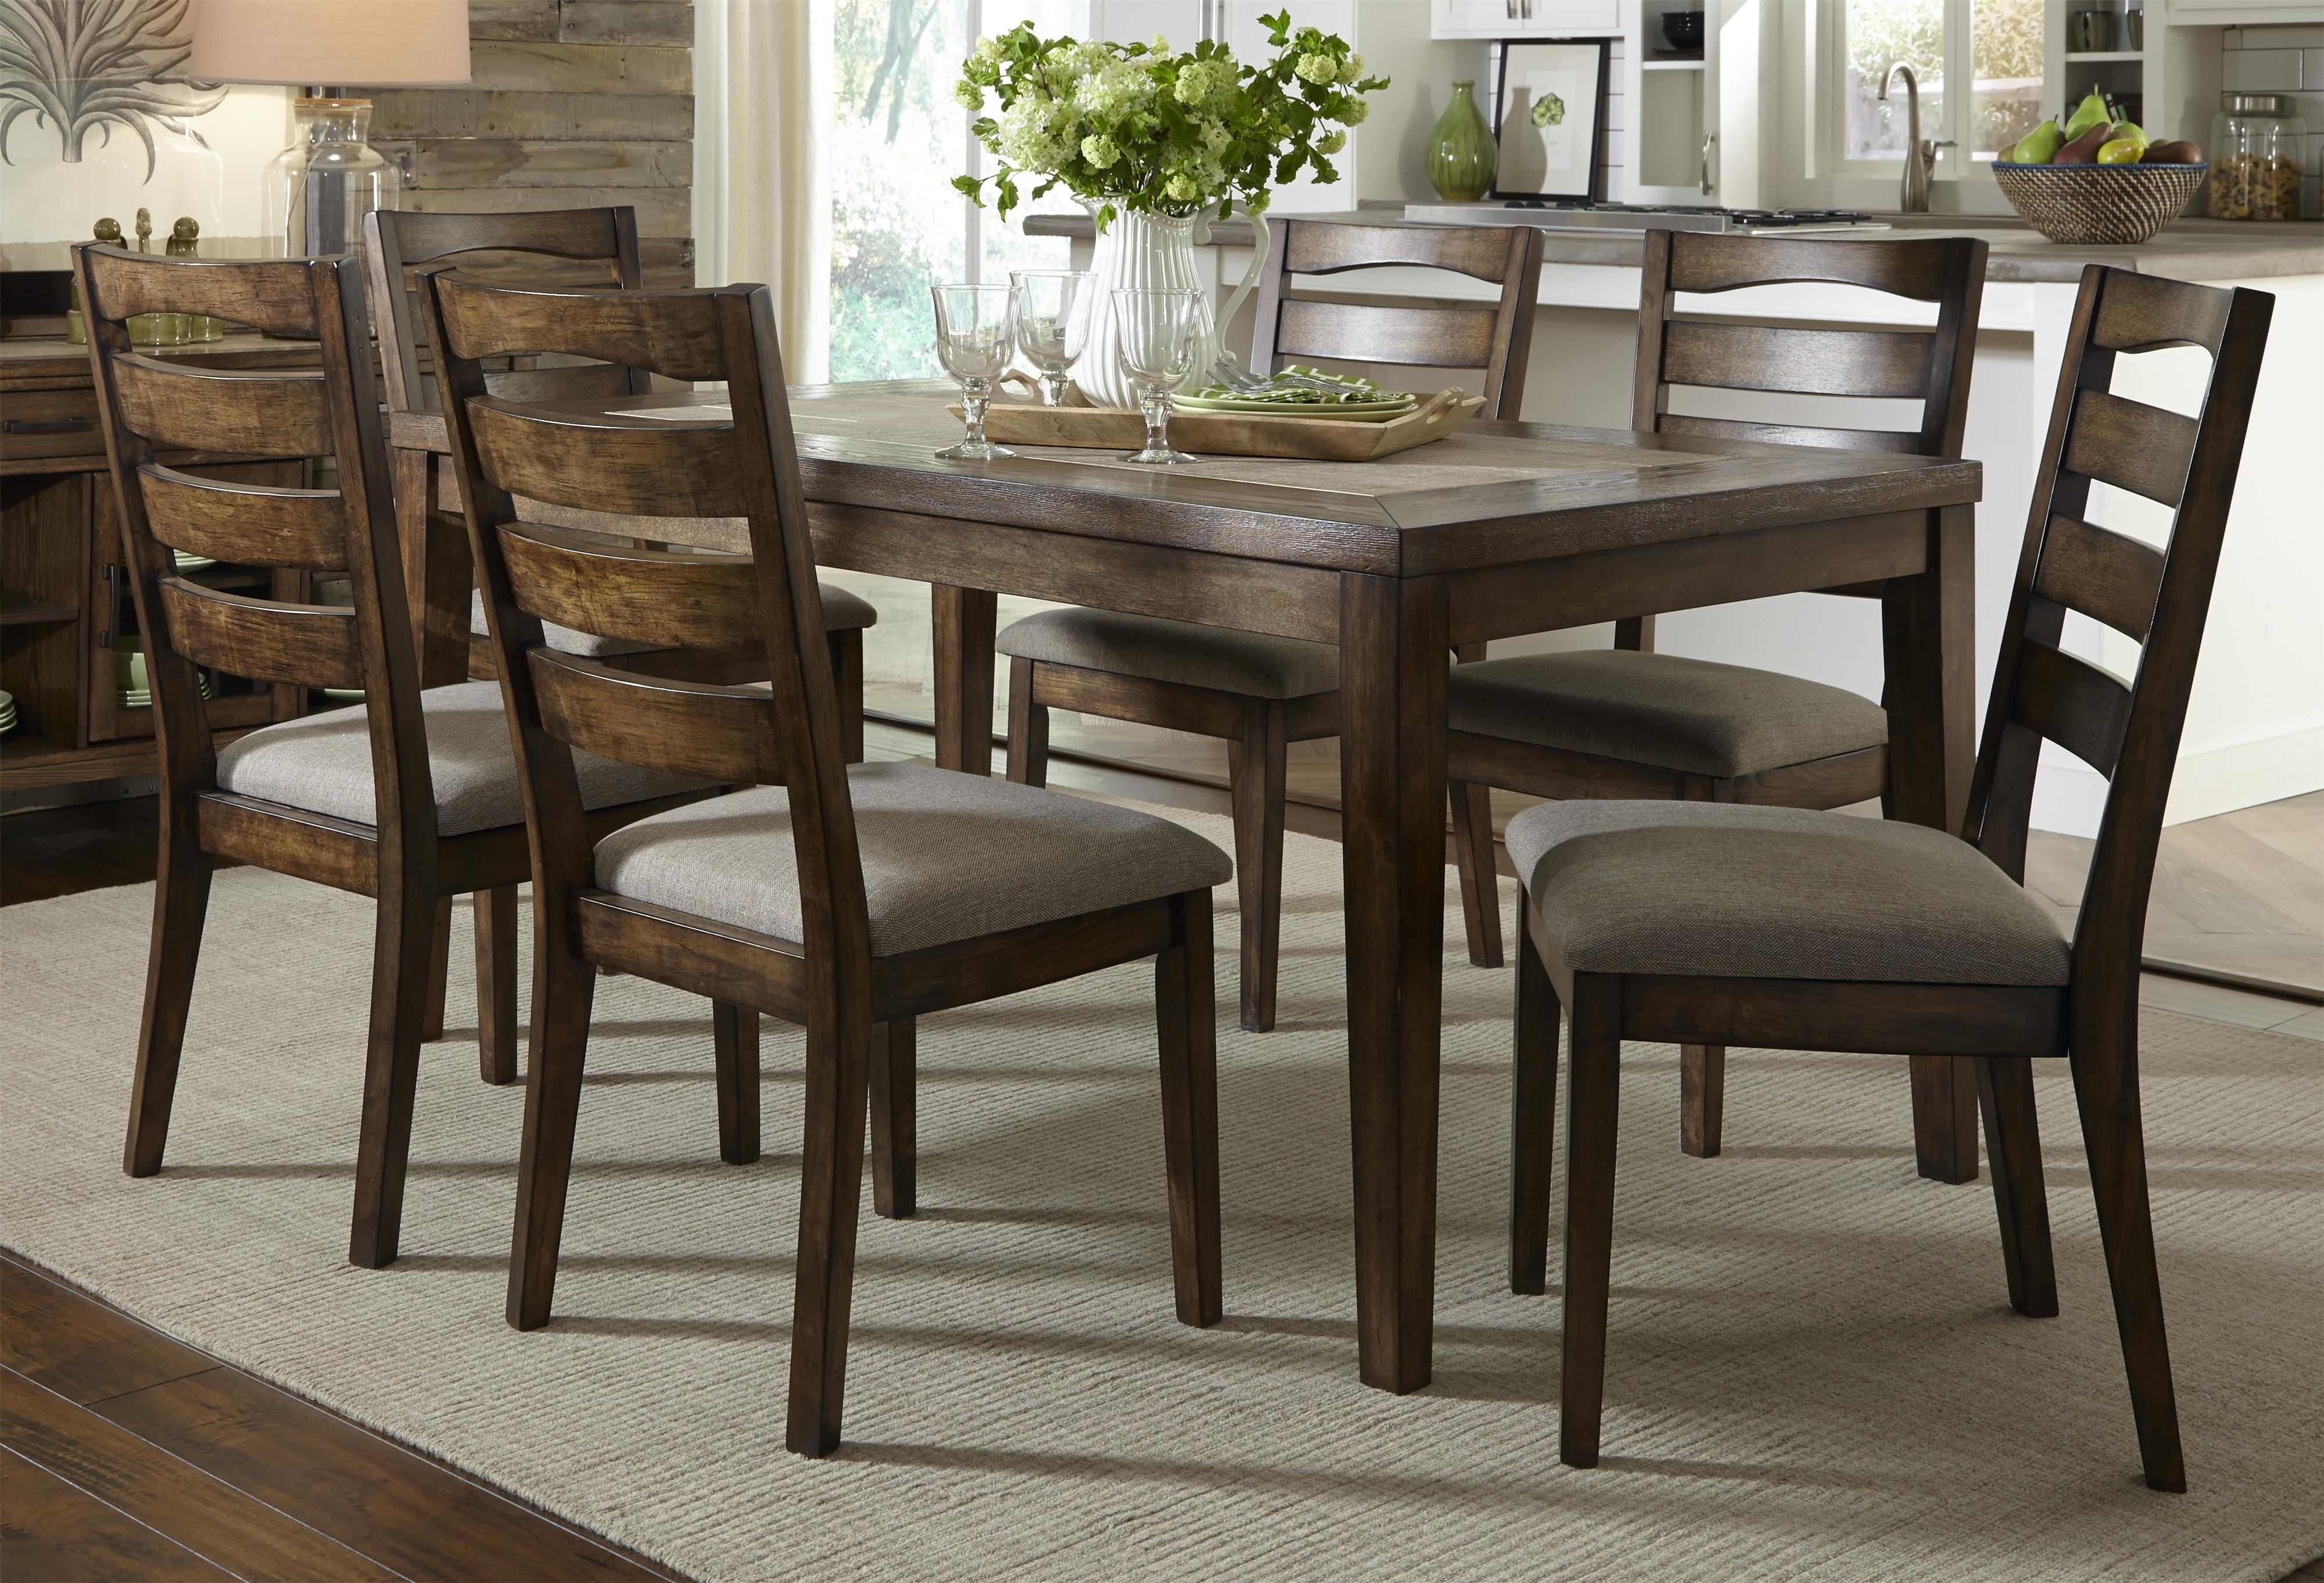 Progressive Furniture Forest Brook 7 Piece Dining Table and Chair Set - Item Number: P378D-10+6x61